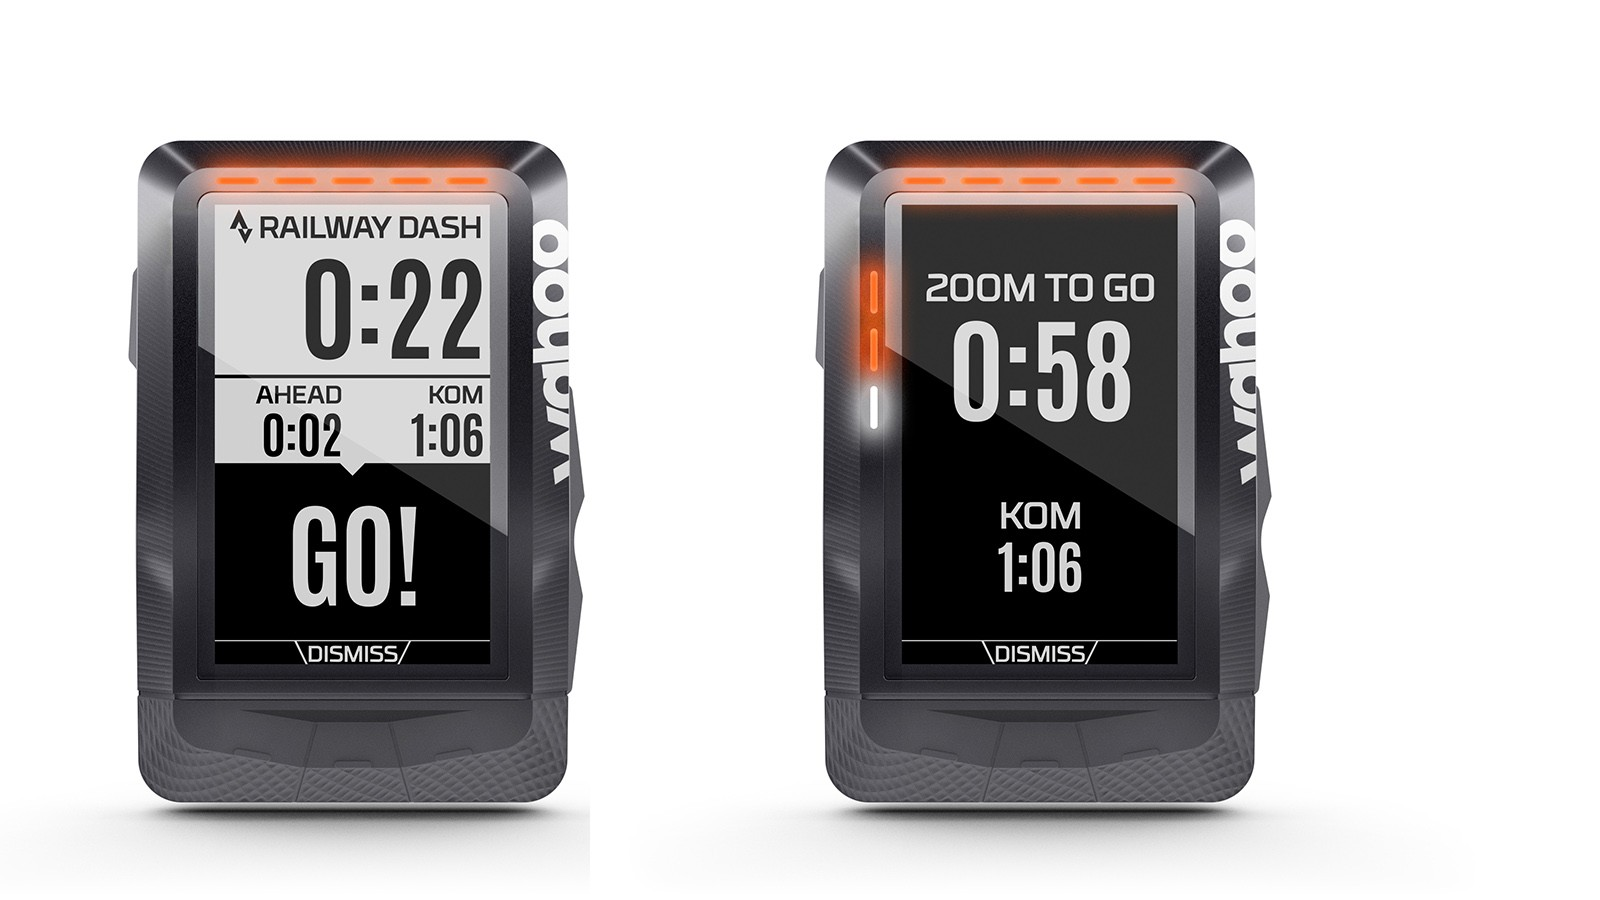 The Wahoo Elemnt syncs with Strava so riders can race their personal bests, or the best time of their friend or KOM/QOM